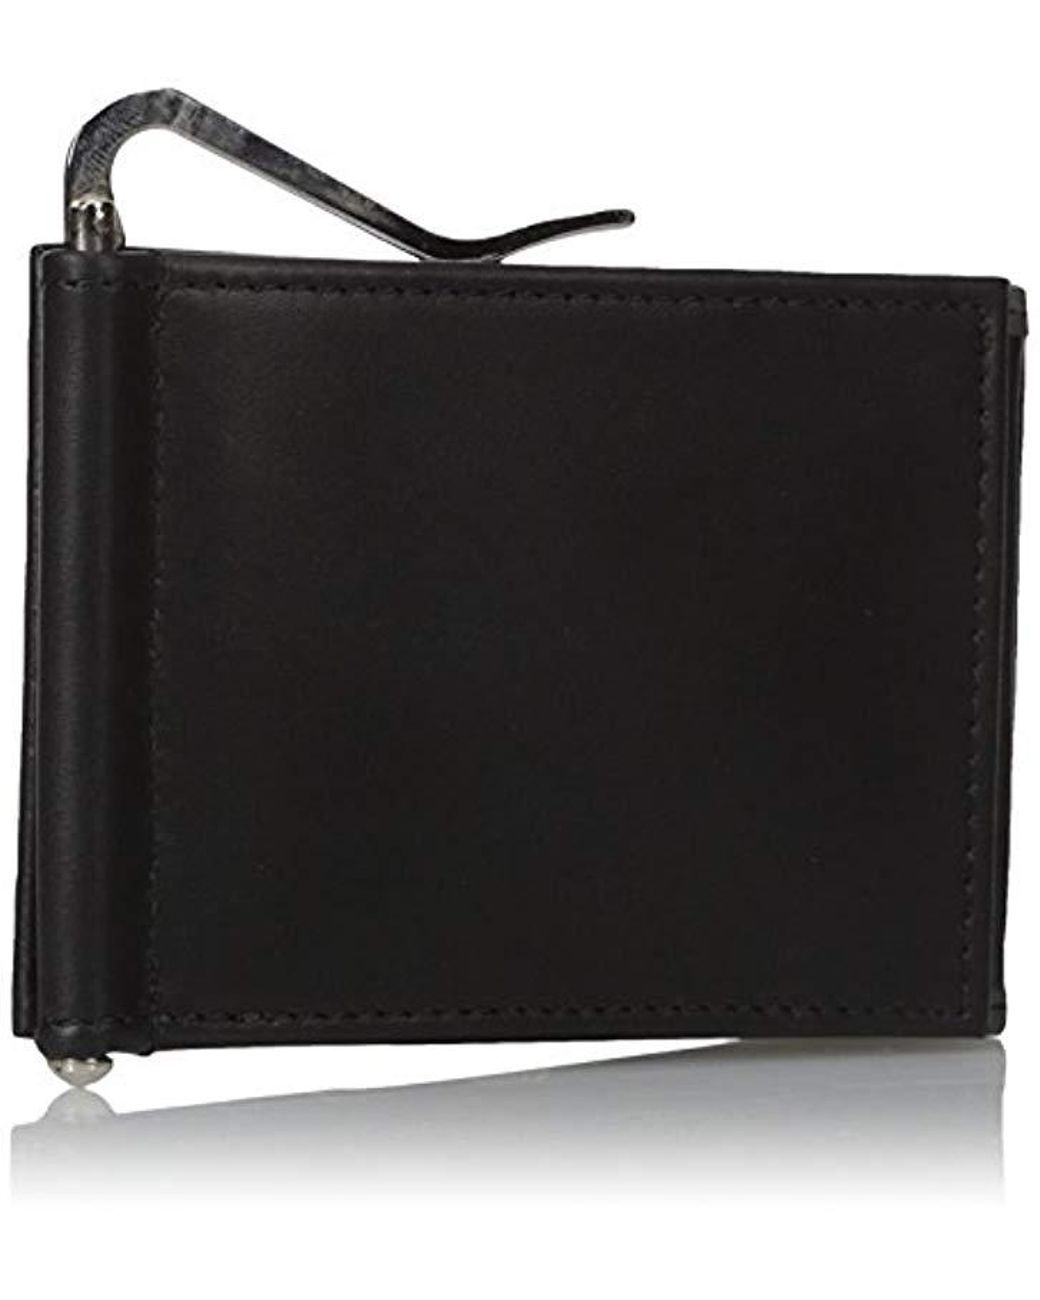 Buxton Men/'s Bellamy RFID Blocking Leather Z-Fold Wallet with Money Clip